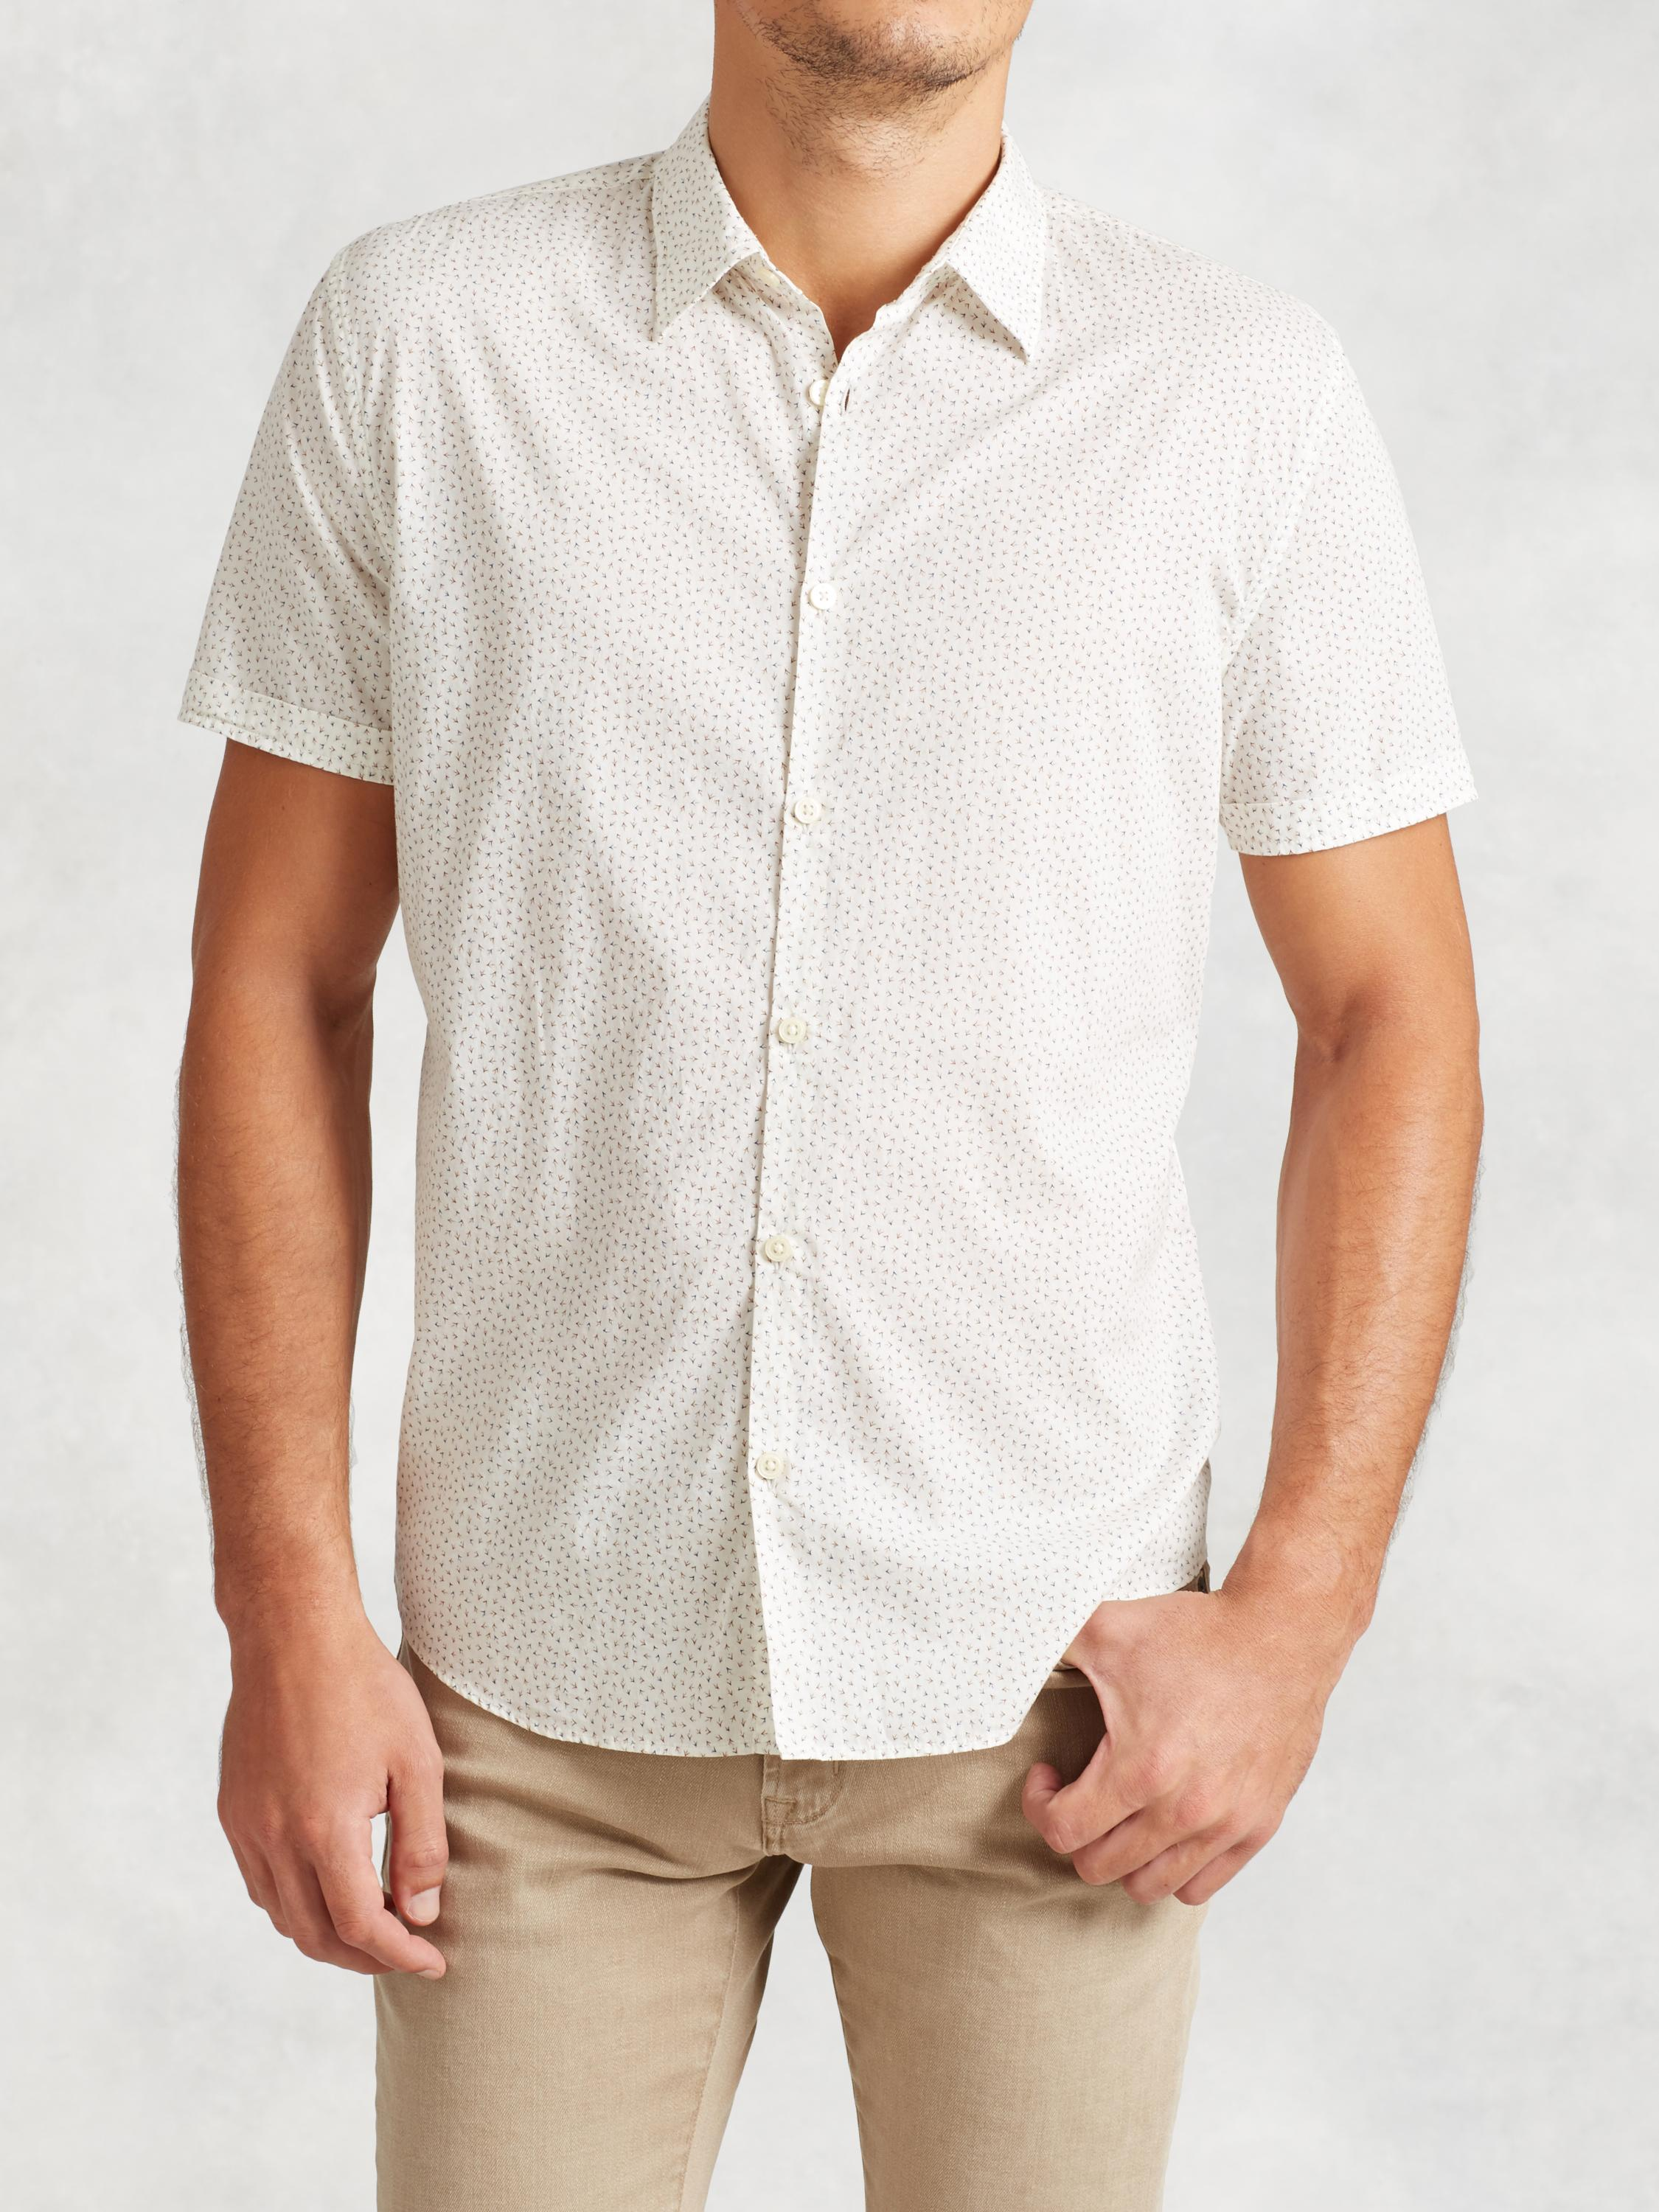 Printed Cotton Short Sleeve Shirt